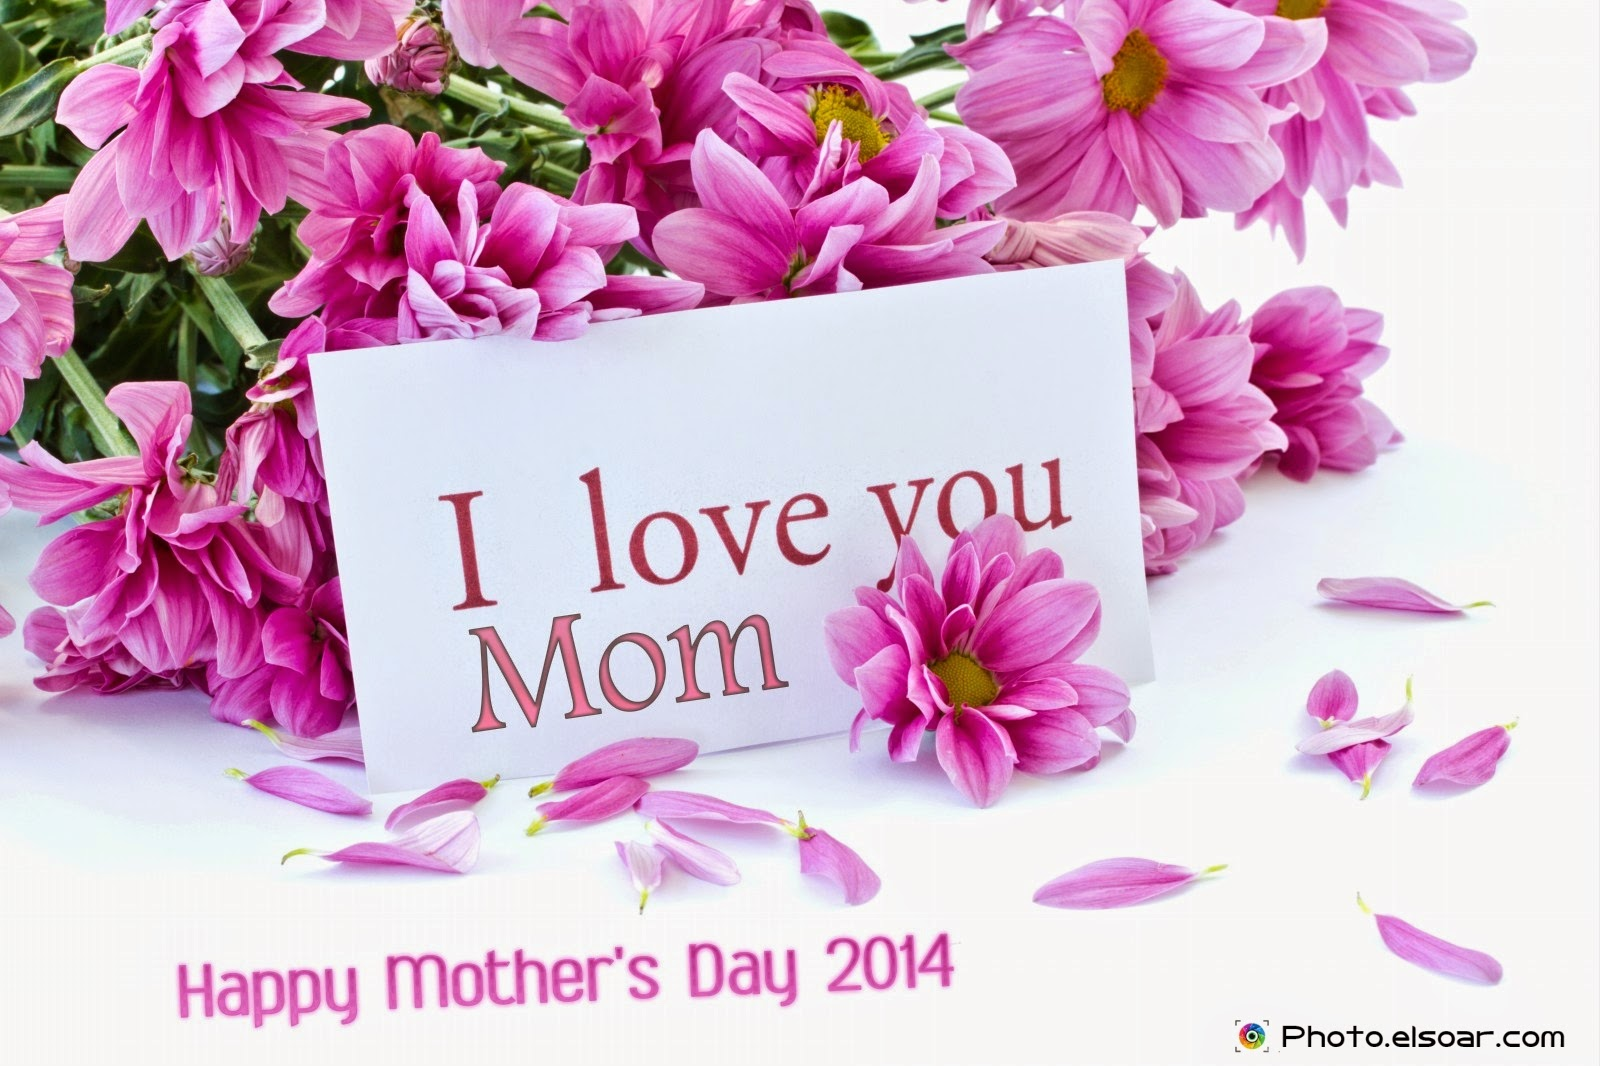 Wallpaper I Love You Mom : Happy Mother s Day May 11 2014 New Wallpapers and Greetings Download ~ Super HD Wallpaperss